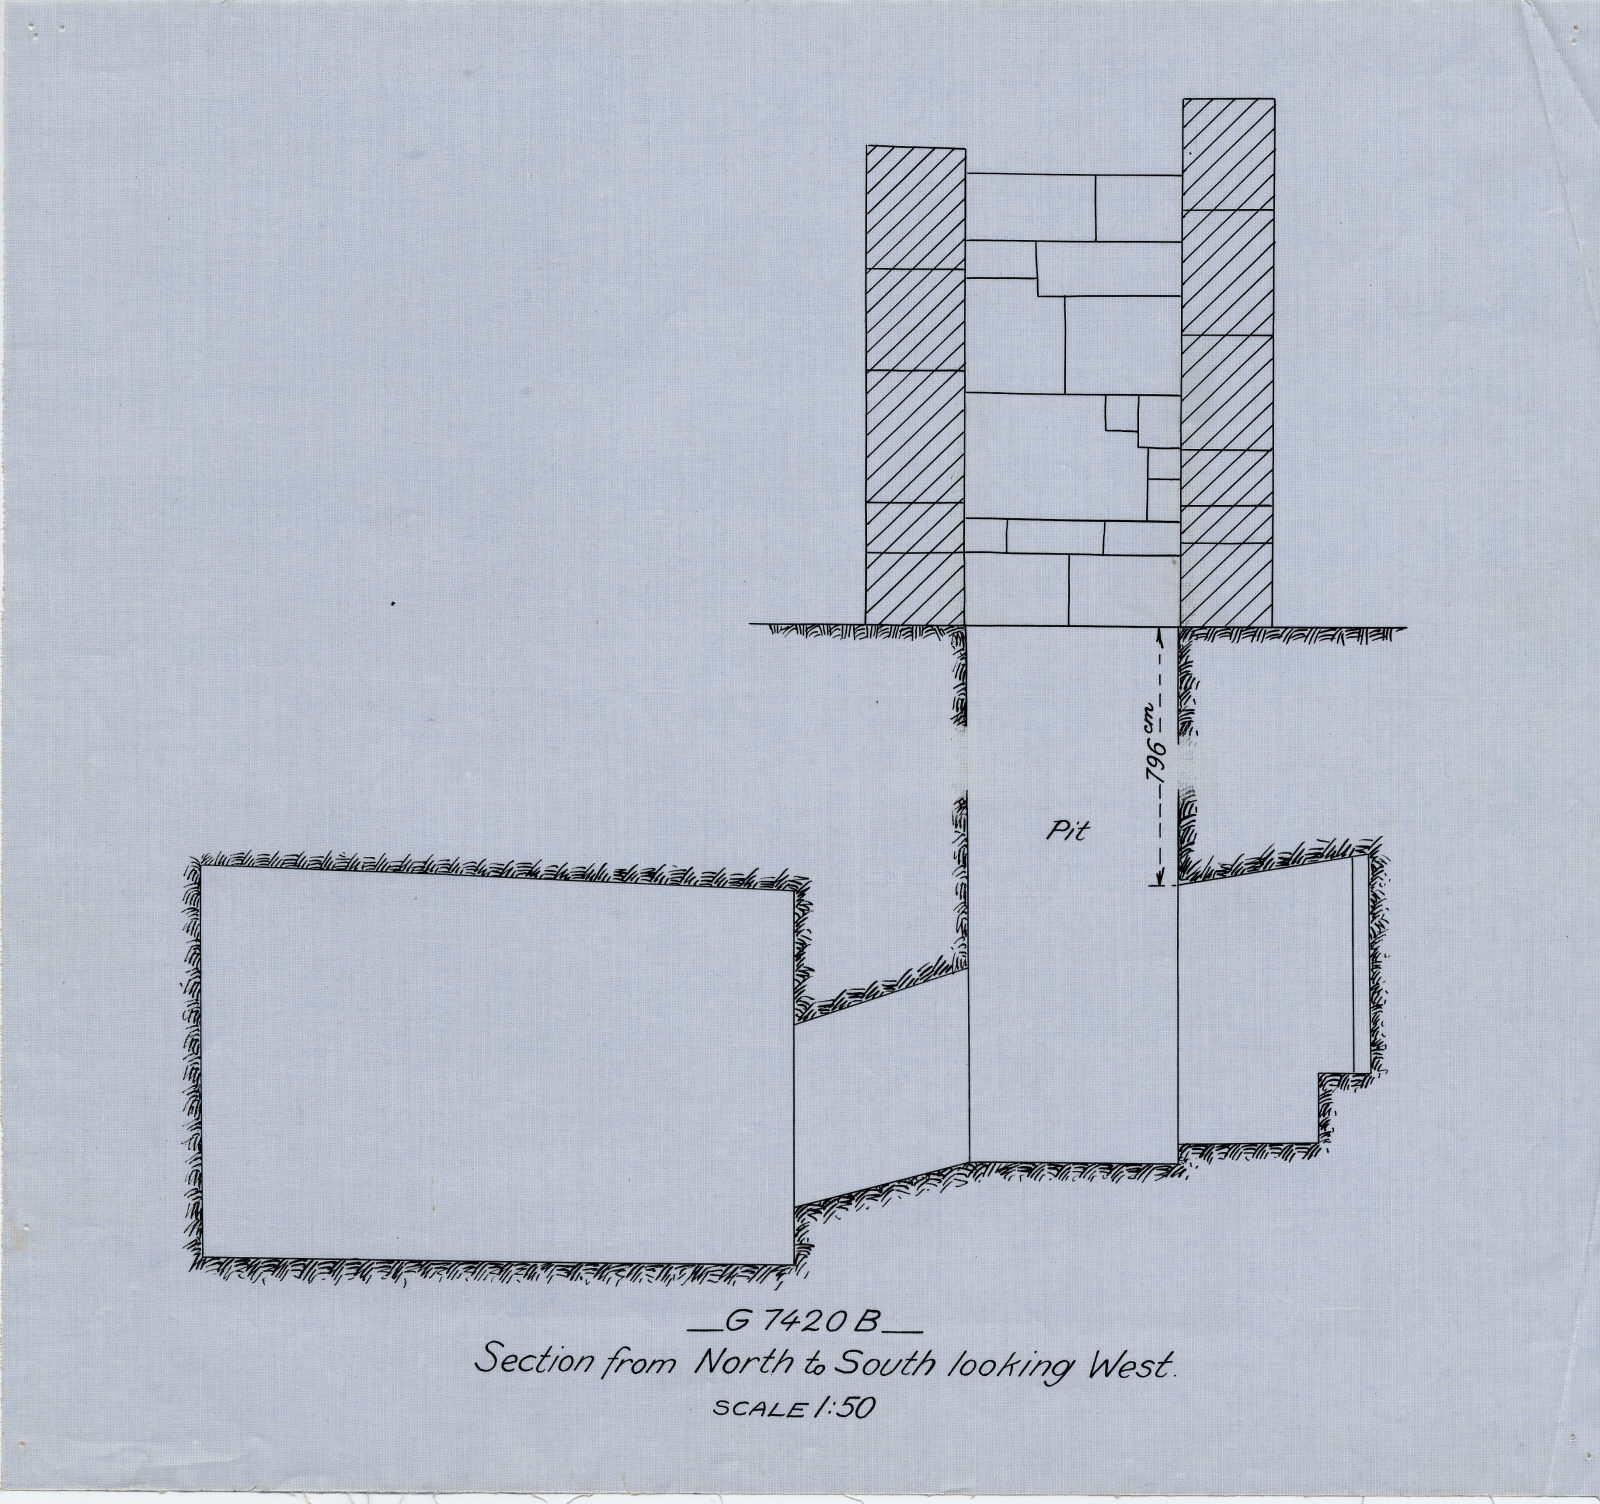 Maps and plans: G 7420, Shaft B